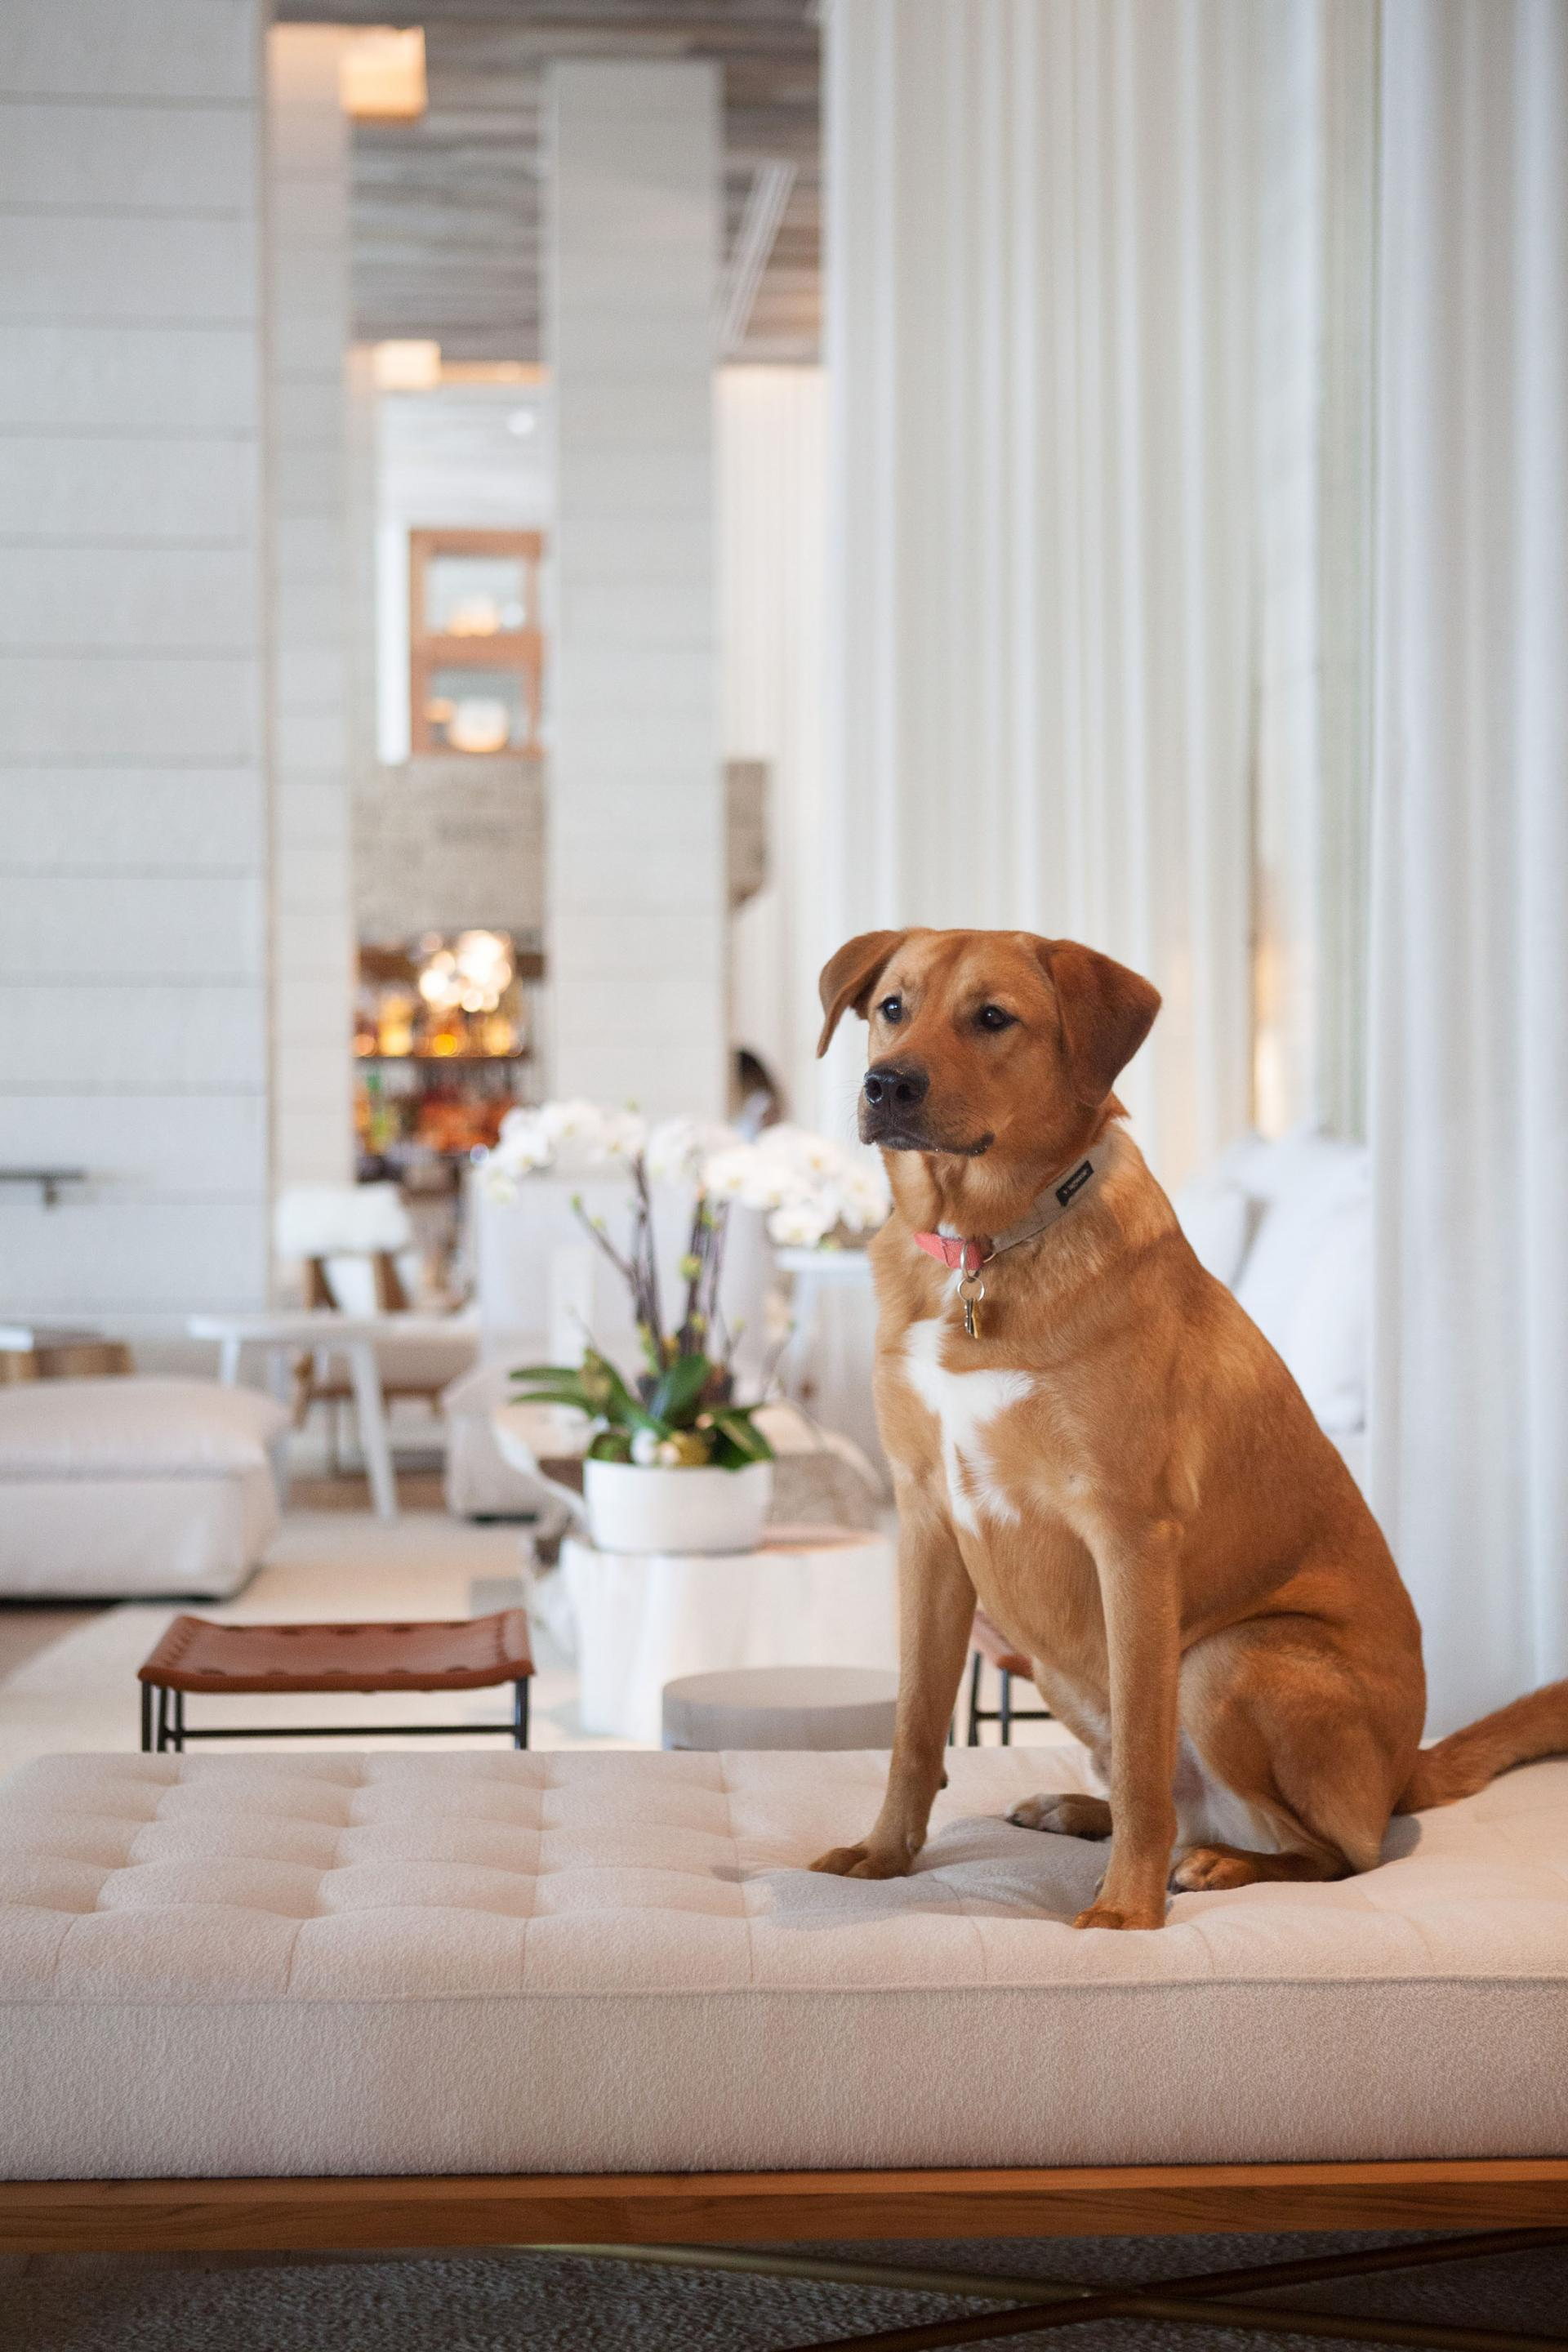 A brown dog sitting on a beige chaise lounge in a hotel